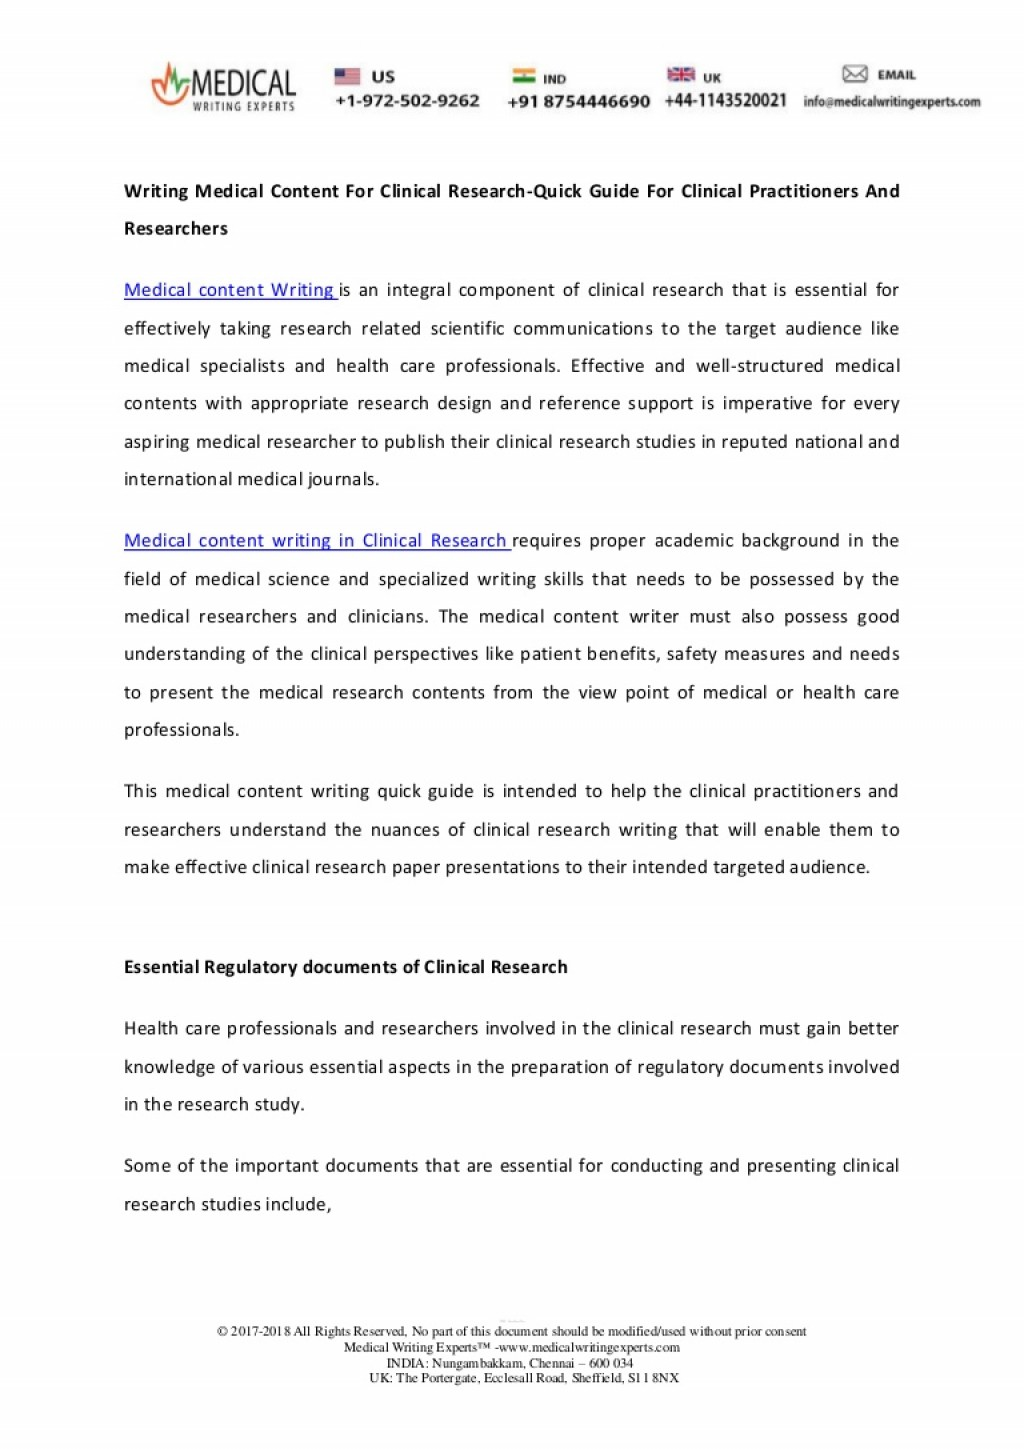 025 Research Paper Writingmedicalcontentforclinicalresearch Quickguideforclinicalpractitioners Thumbnail How To Publish Medical In Breathtaking India Large